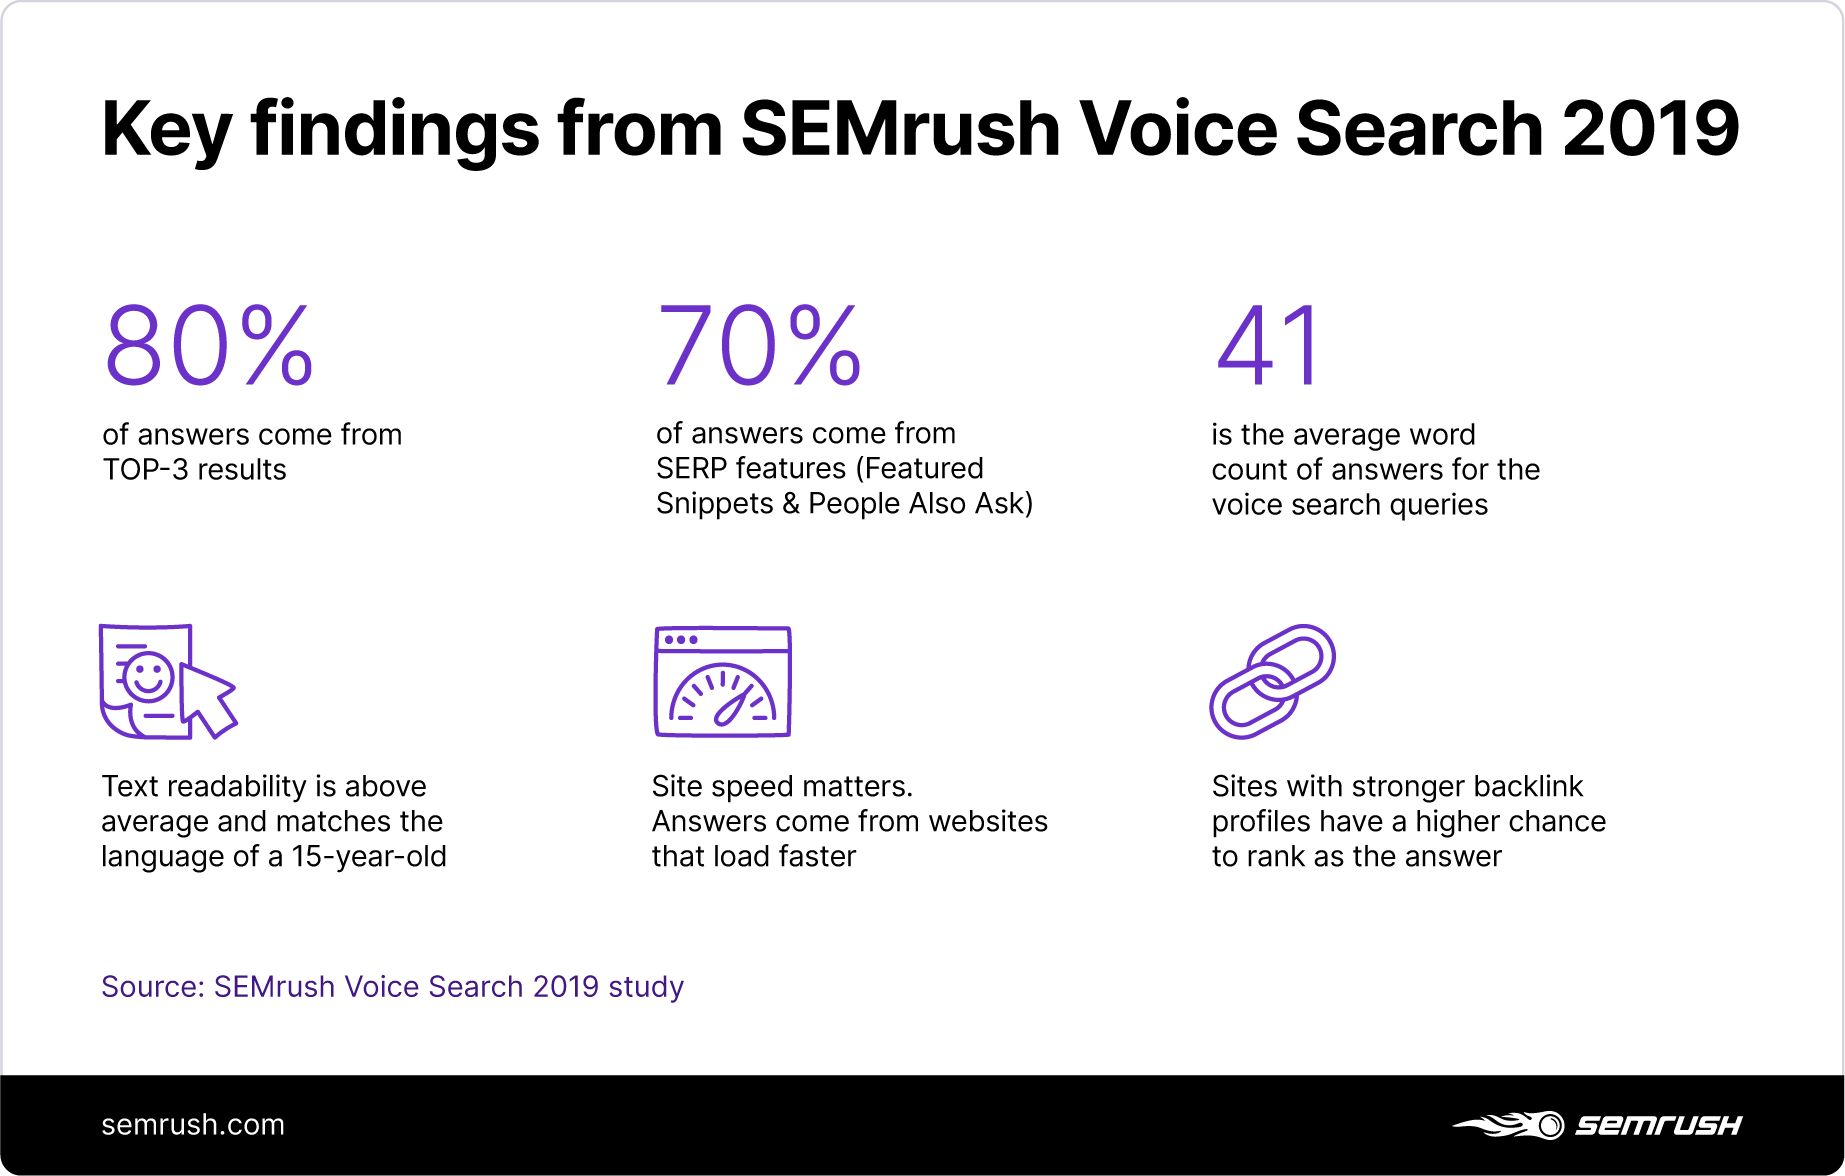 Hallazgos clave del estudio SEMrush Voice Search 2019